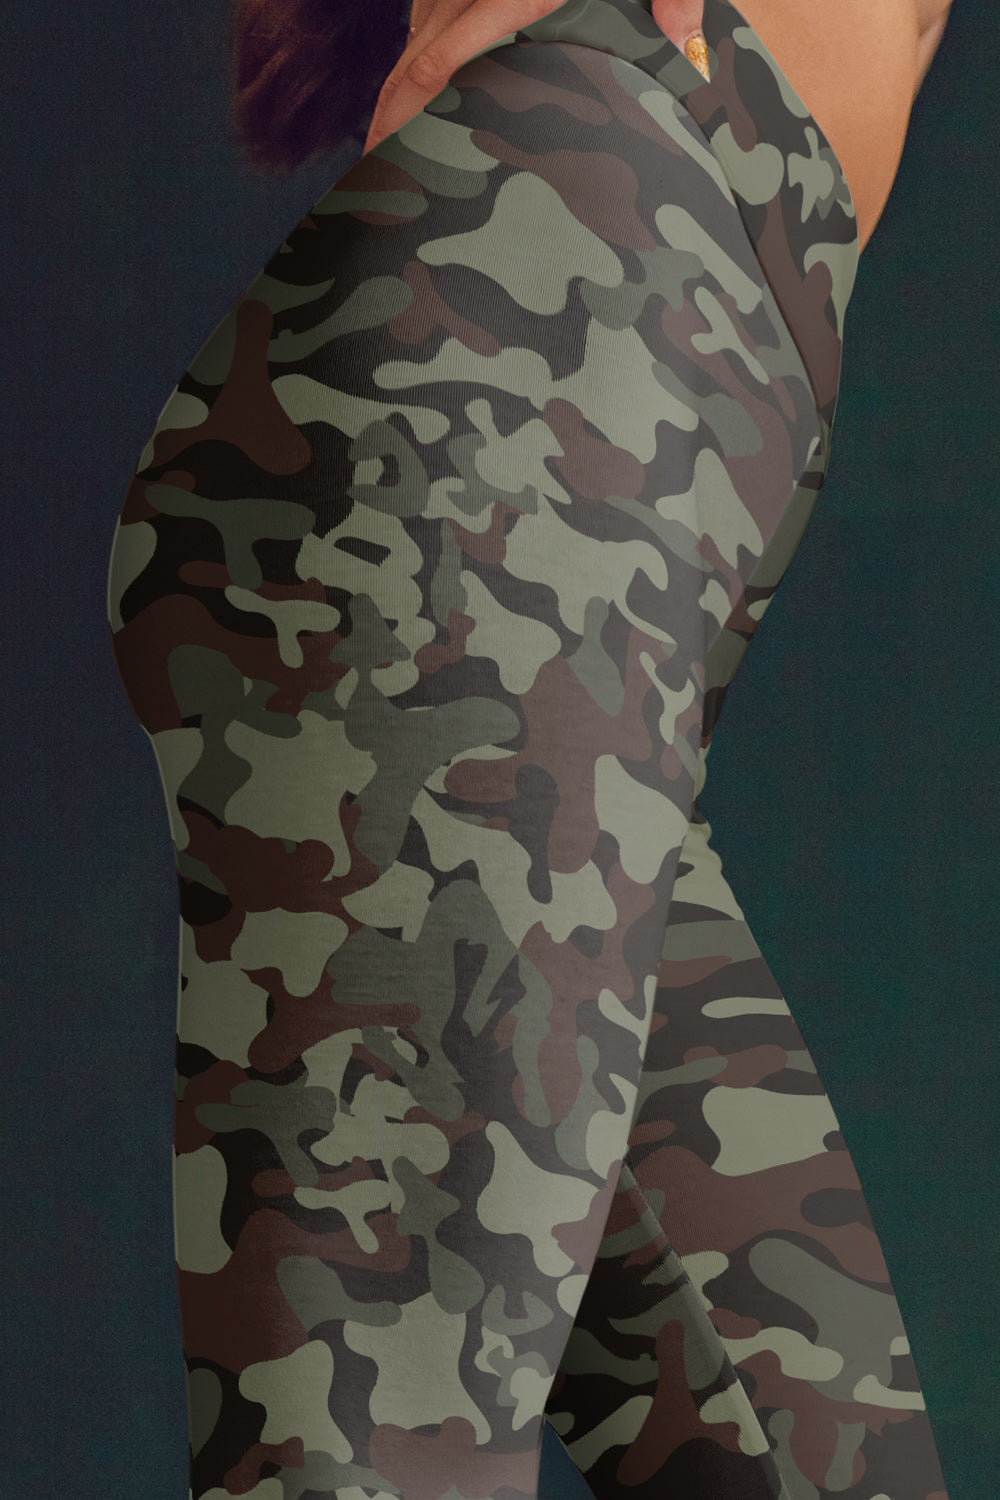 camouflage-print-camo-classic-green-brown-army-leggings-capri